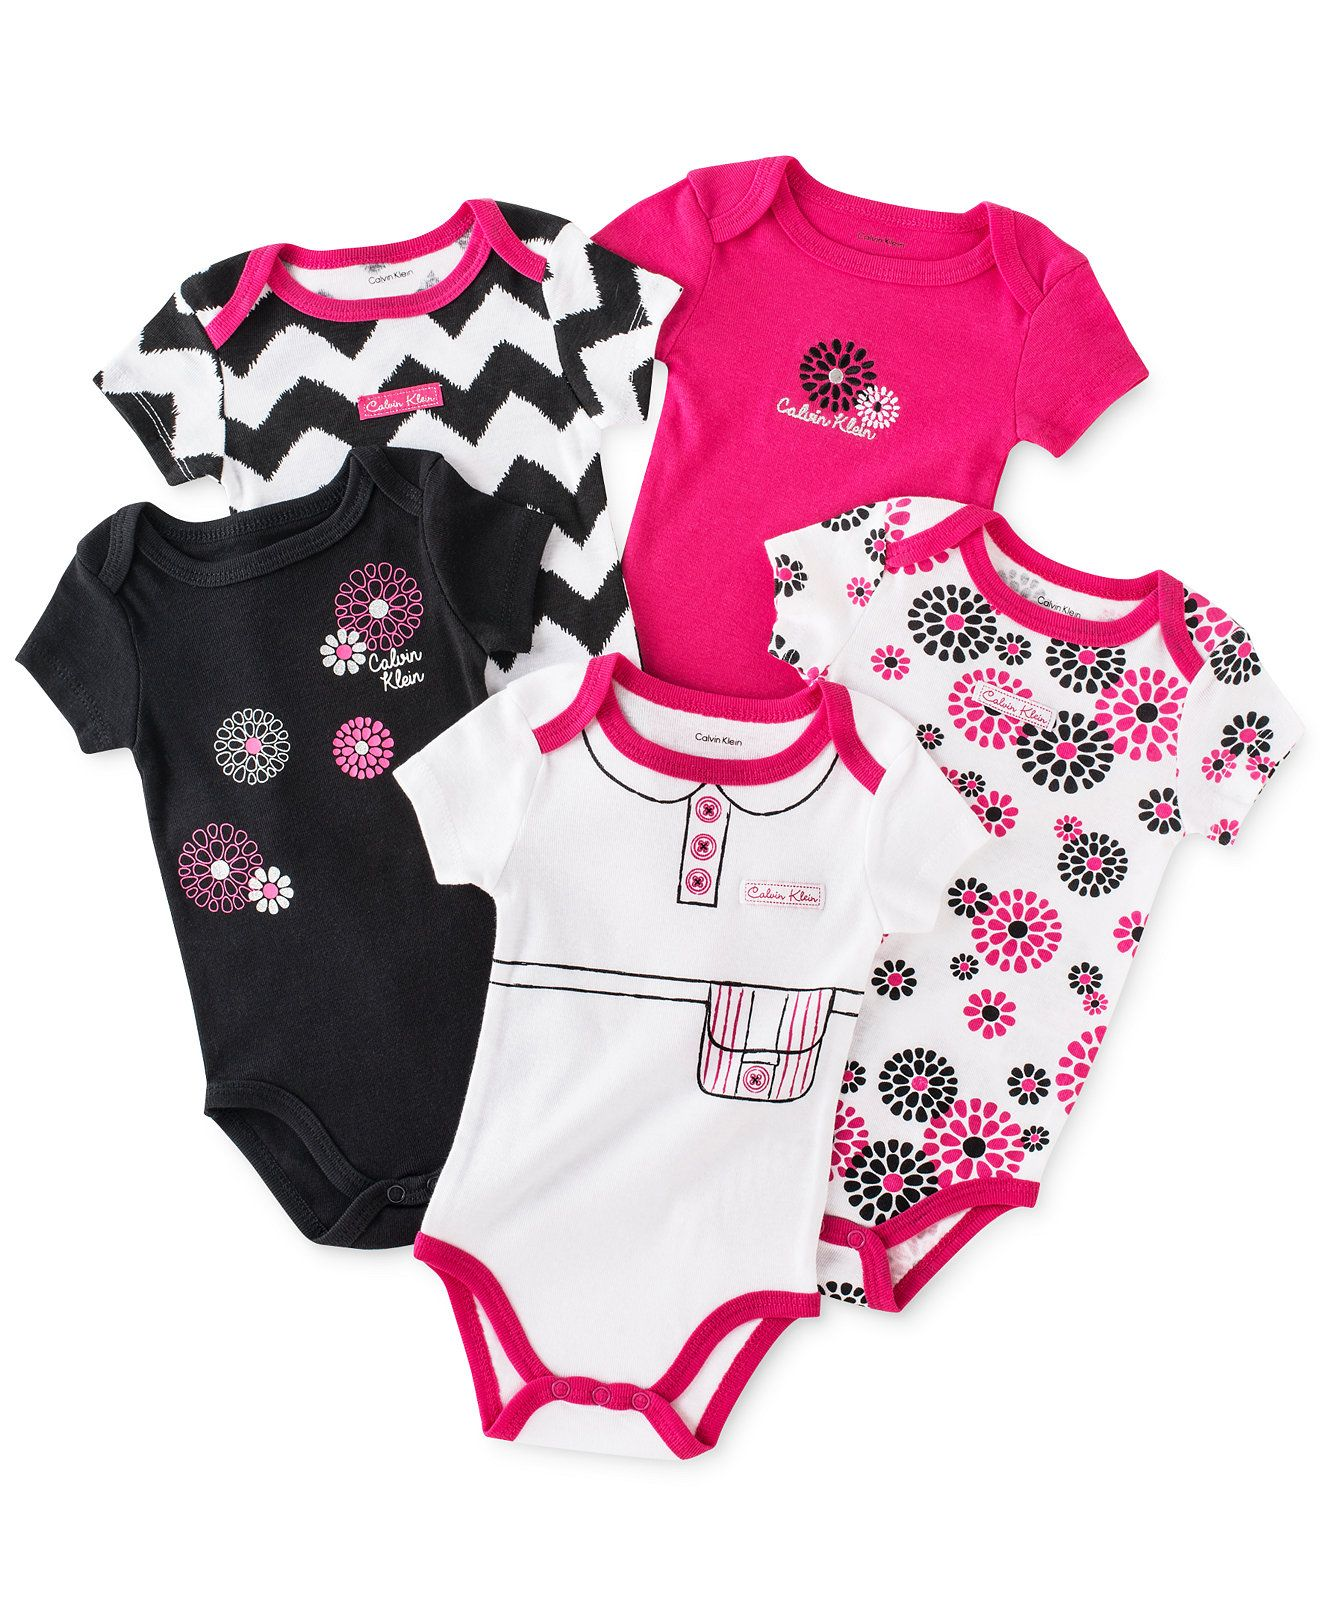 ca11b20c86 Calvin Klein Baby Girls  5-Pack Bodysuits - Kids Newborn Shop - Macy s